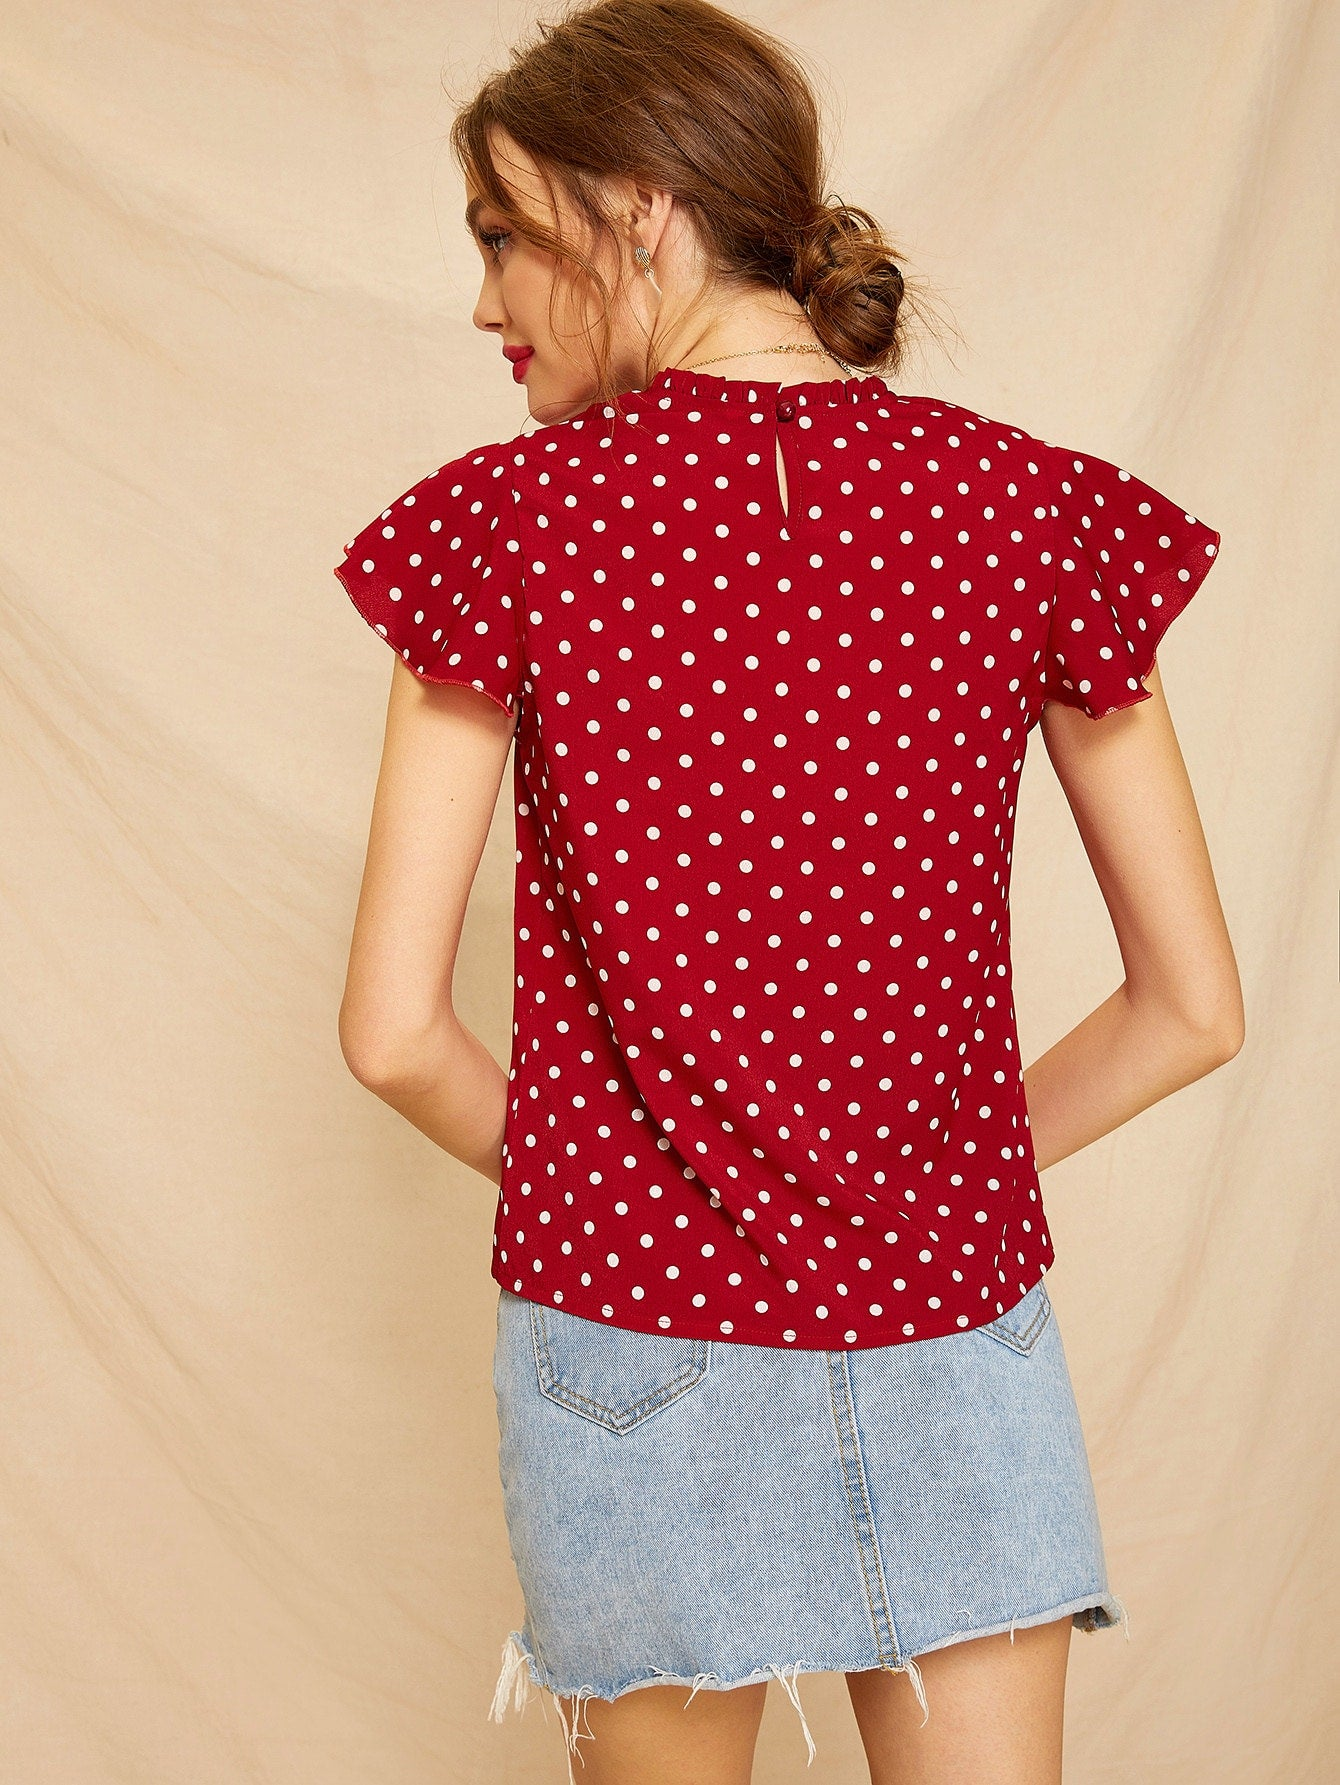 Butterfly Sleeve Polka Dot Frill Blouse-Polyester-Trendy-JayBoutique-Red-S-Trendy-JayBoutique